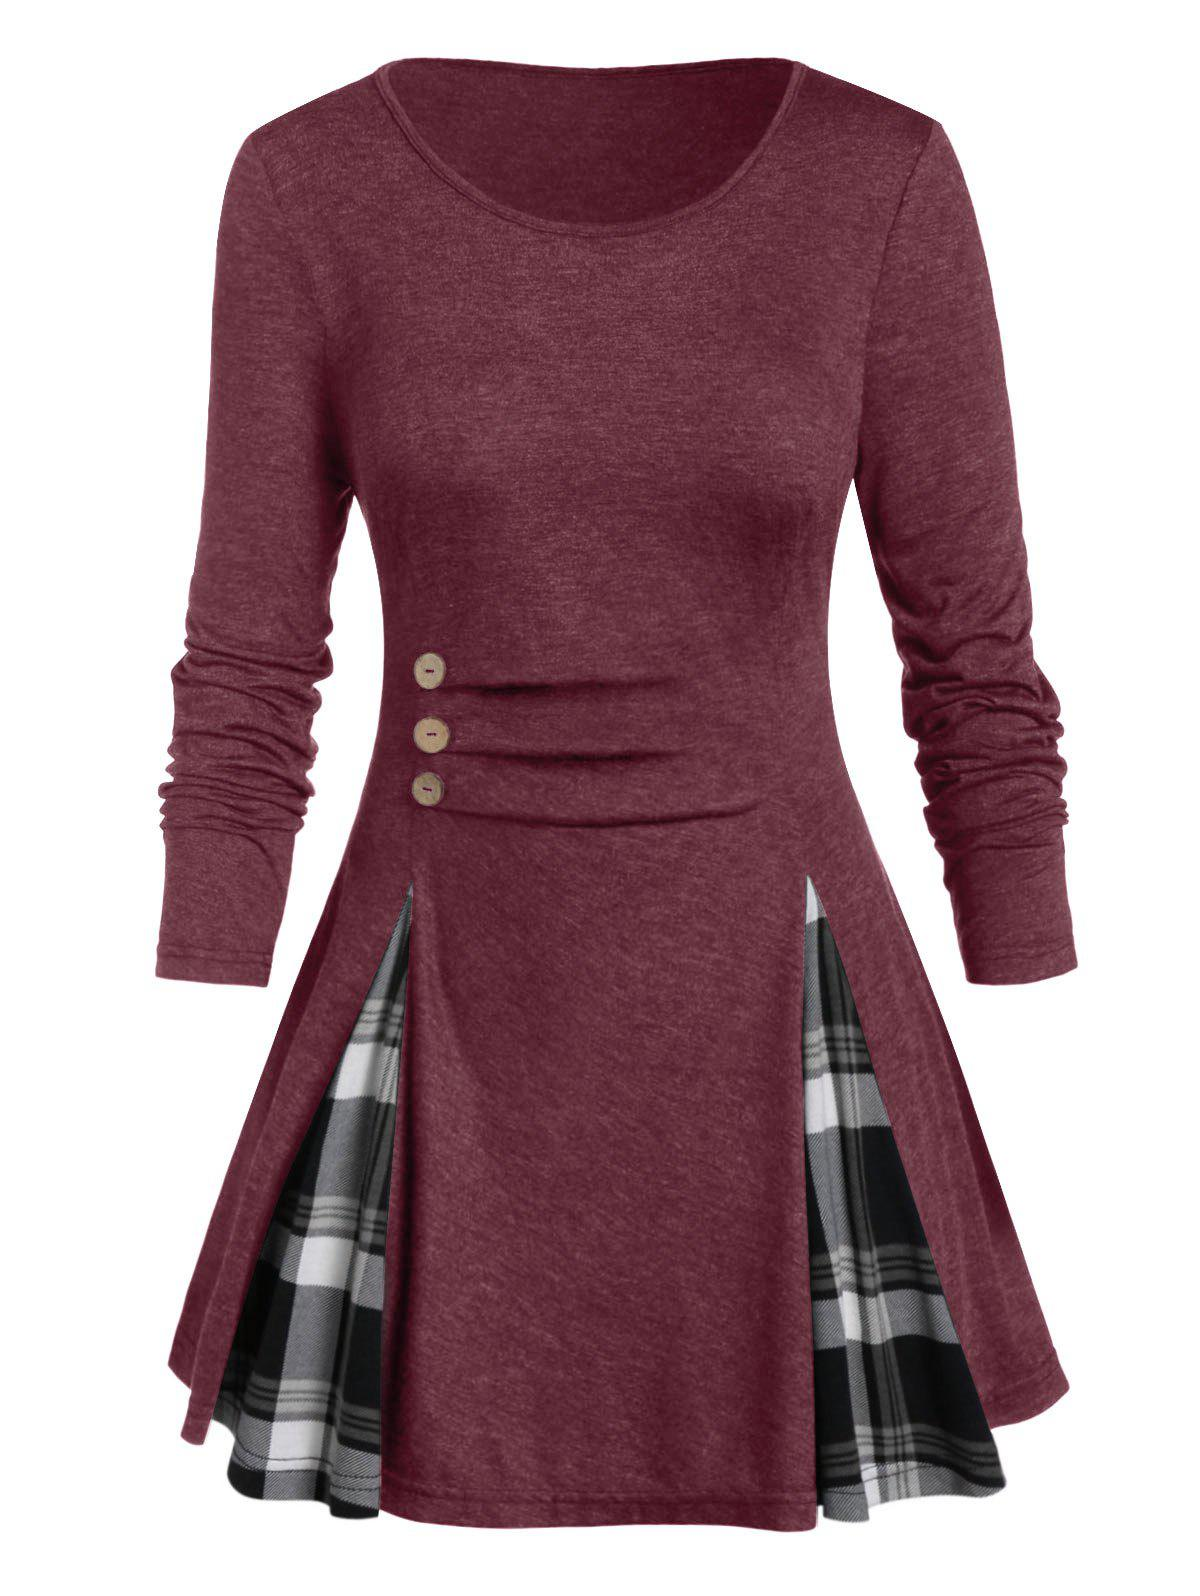 Plus Size Buttoned Plaid Long Sleeve Tunic Tee - RED WINE 5X